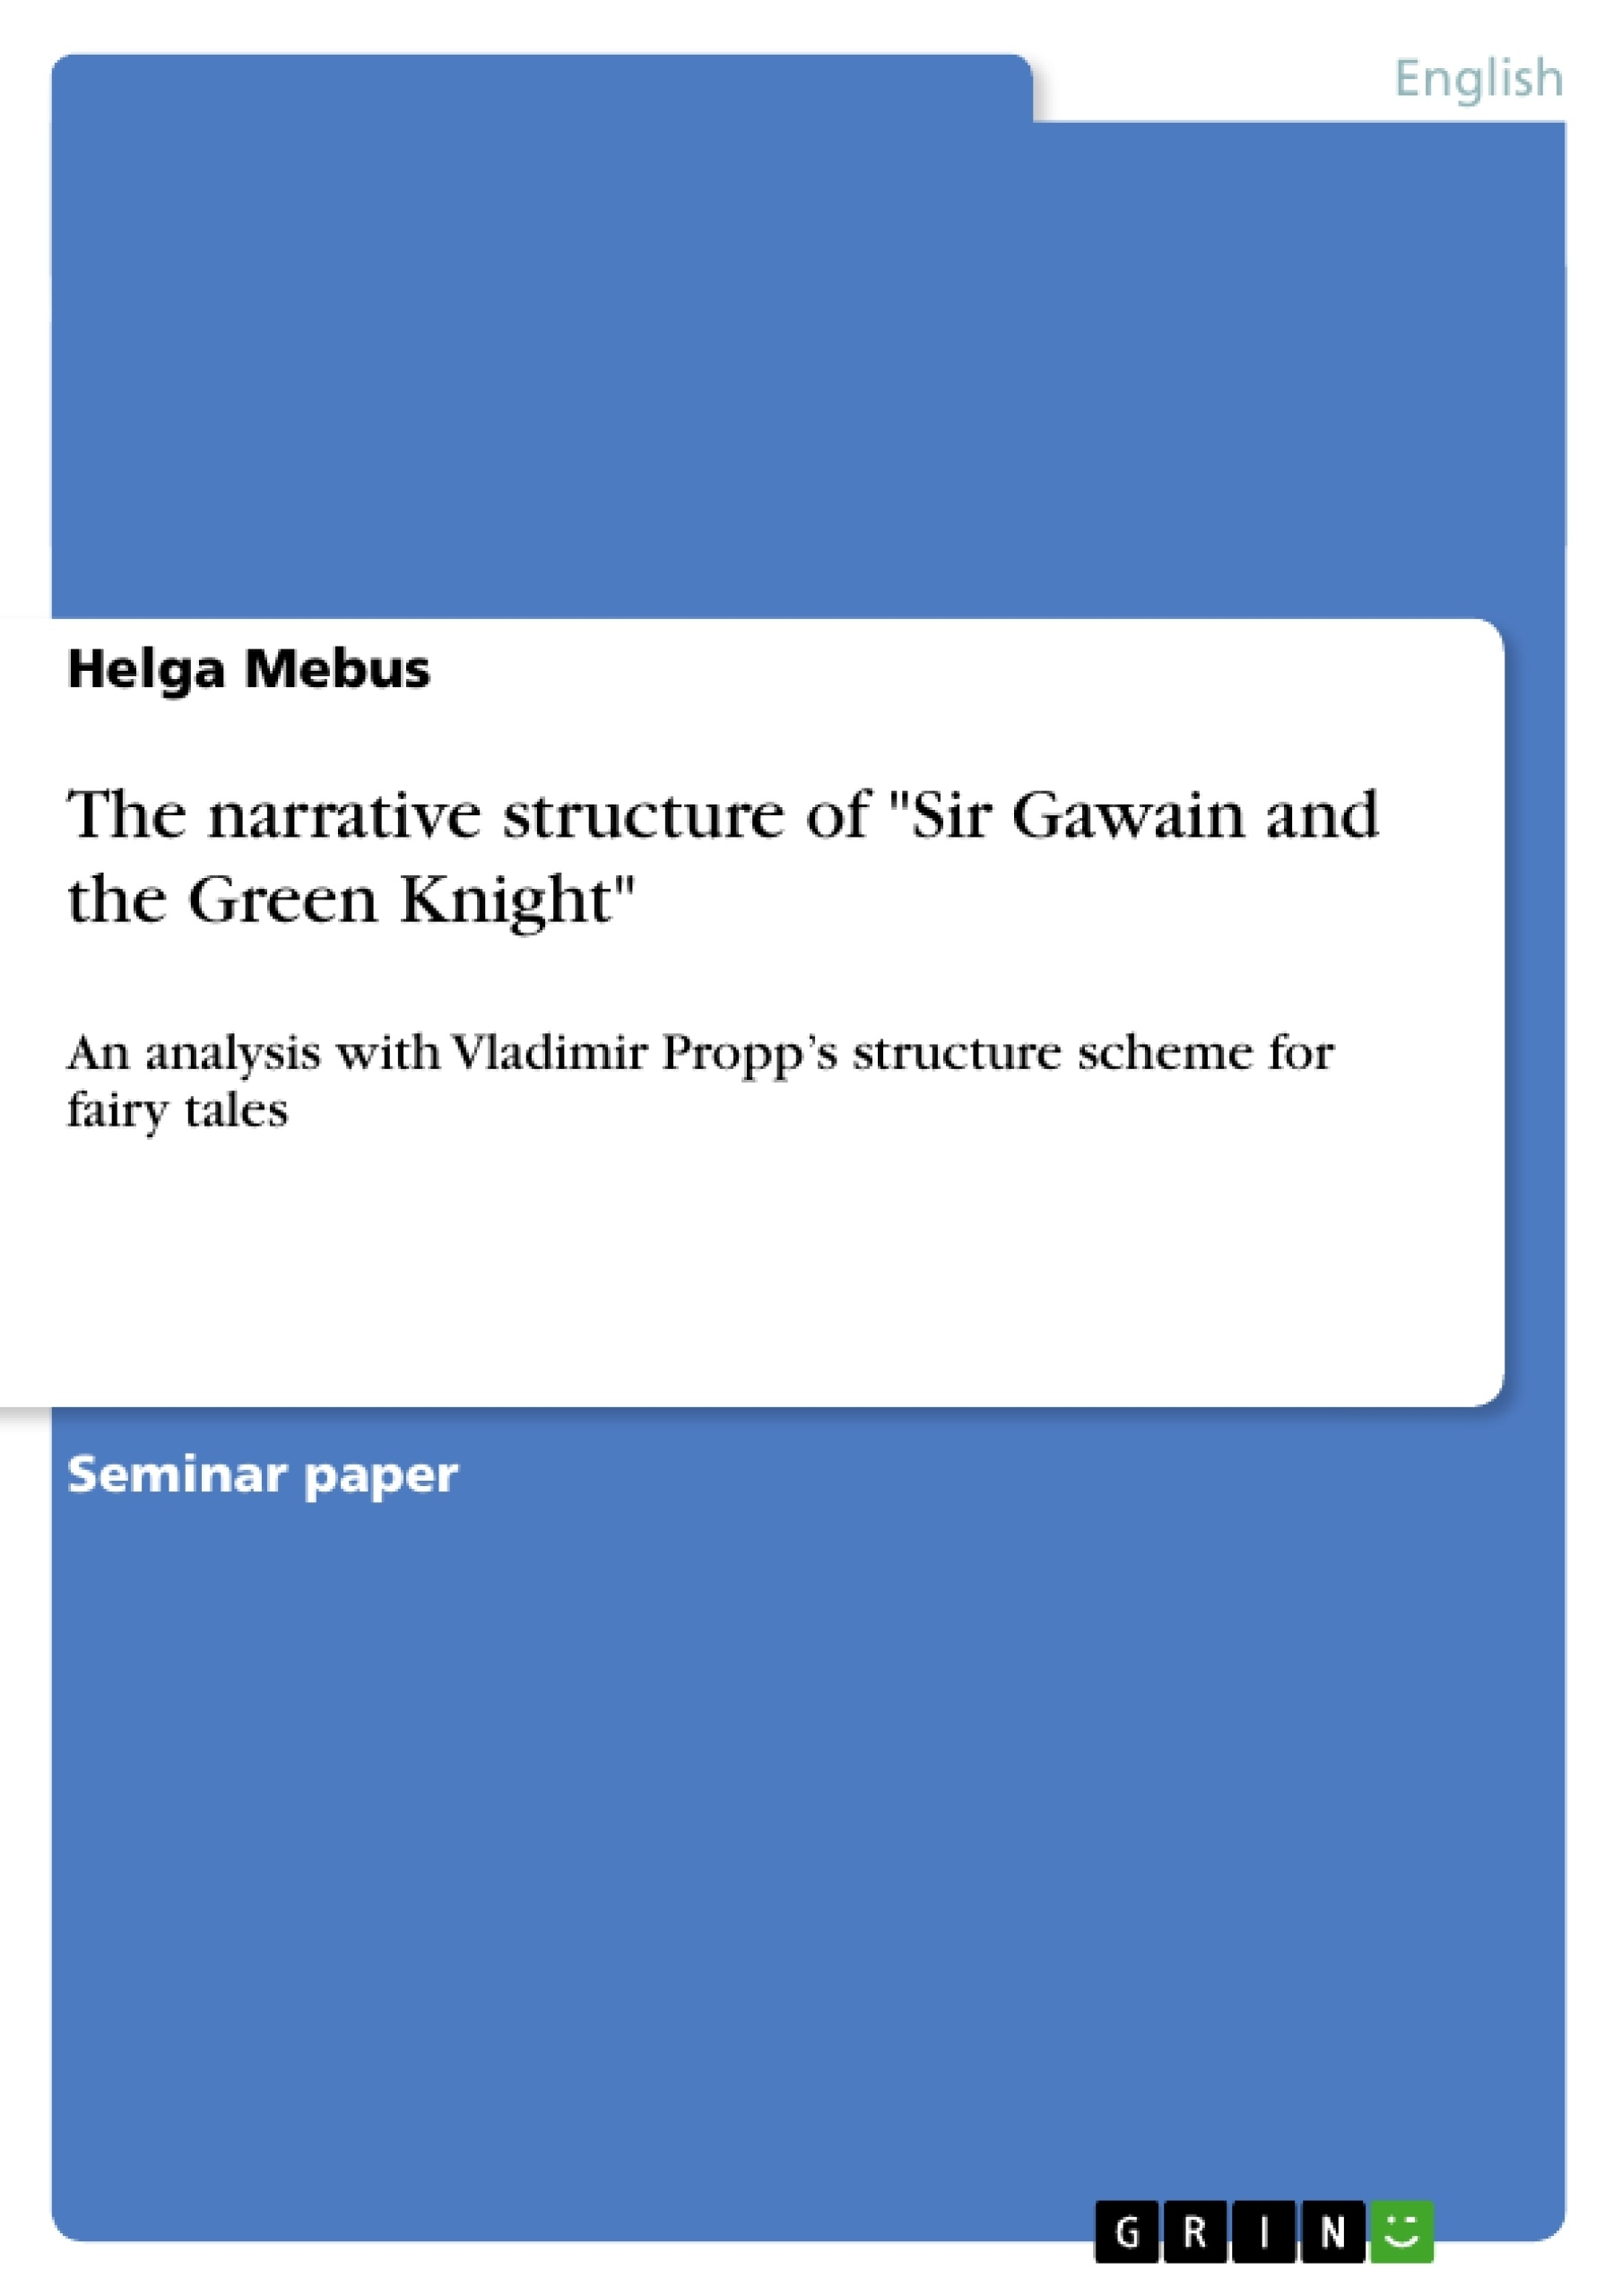 gawain and the green knight essay In the pearl poet's sir gawain and the green knight, an epic talk emerges to reveal a man's journey of honesty, morals, and honor sir gawain accepts a challenge in place of his uncle king arthur, with hidden tests and viable consequences.